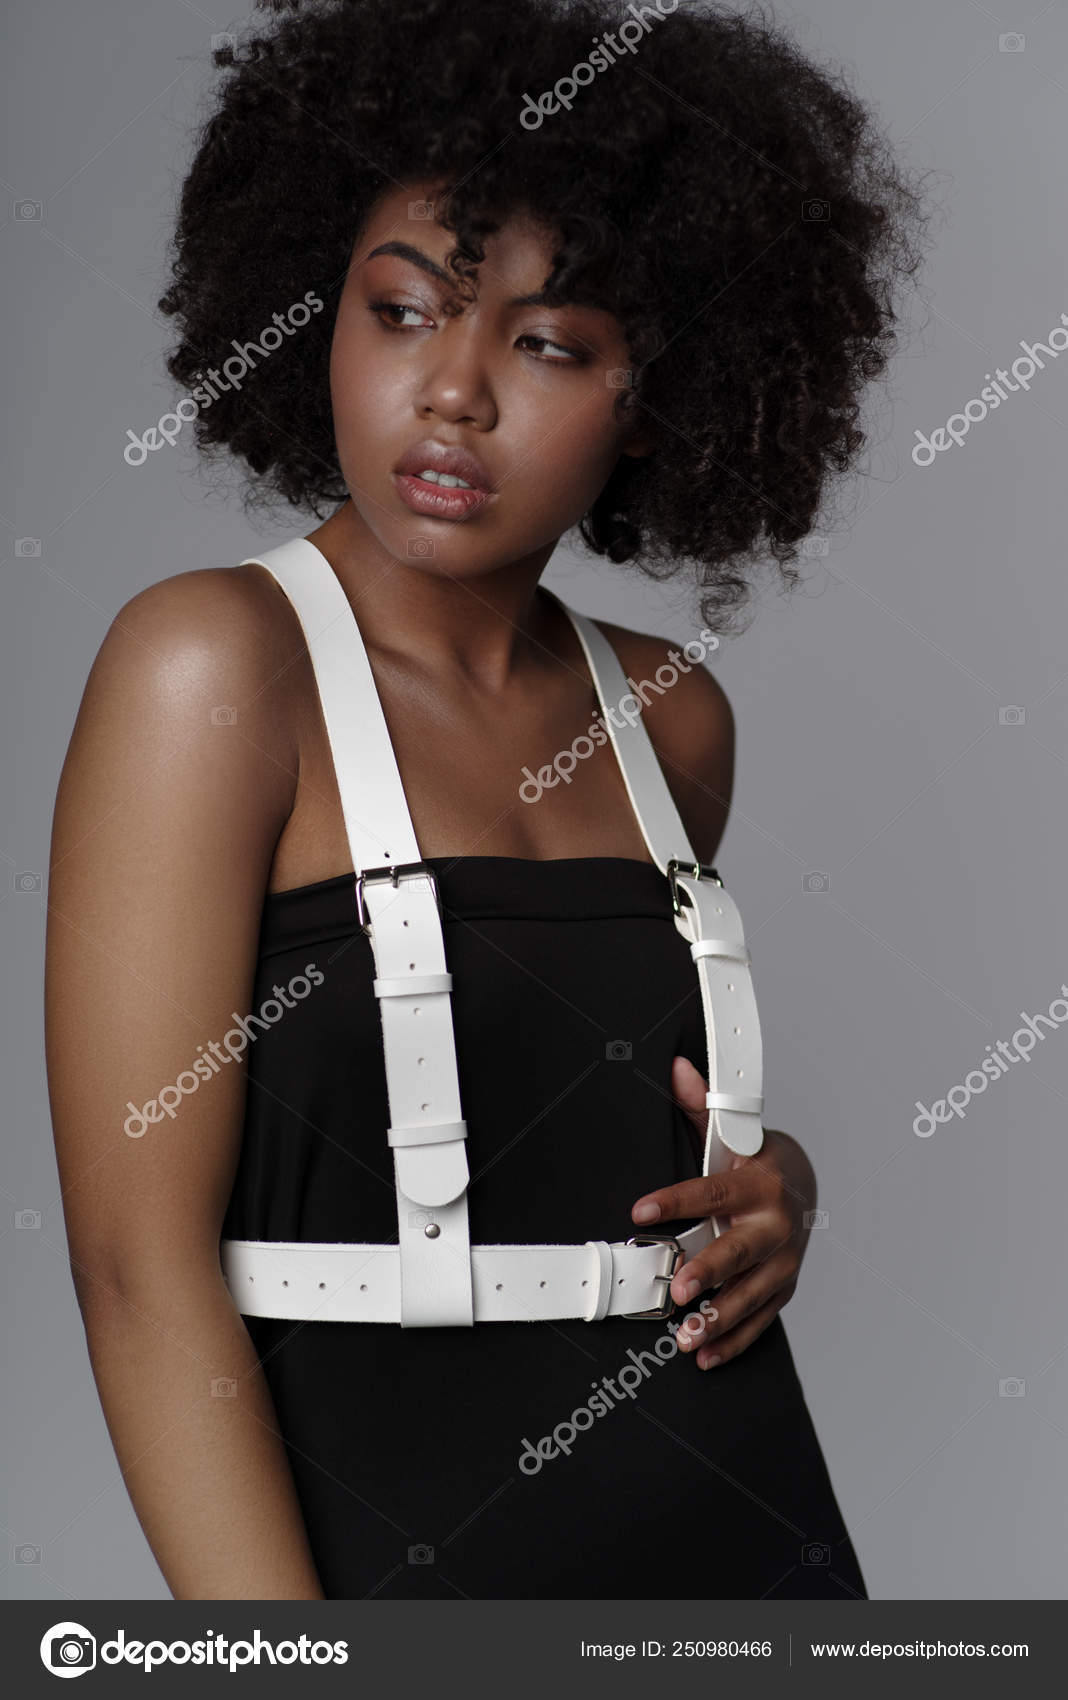 b5db68f4daed9 Beautiful african american woman with curly hairstyle wearing leather female  sword belt over black dress and posing on light grey background — Photo by  ...